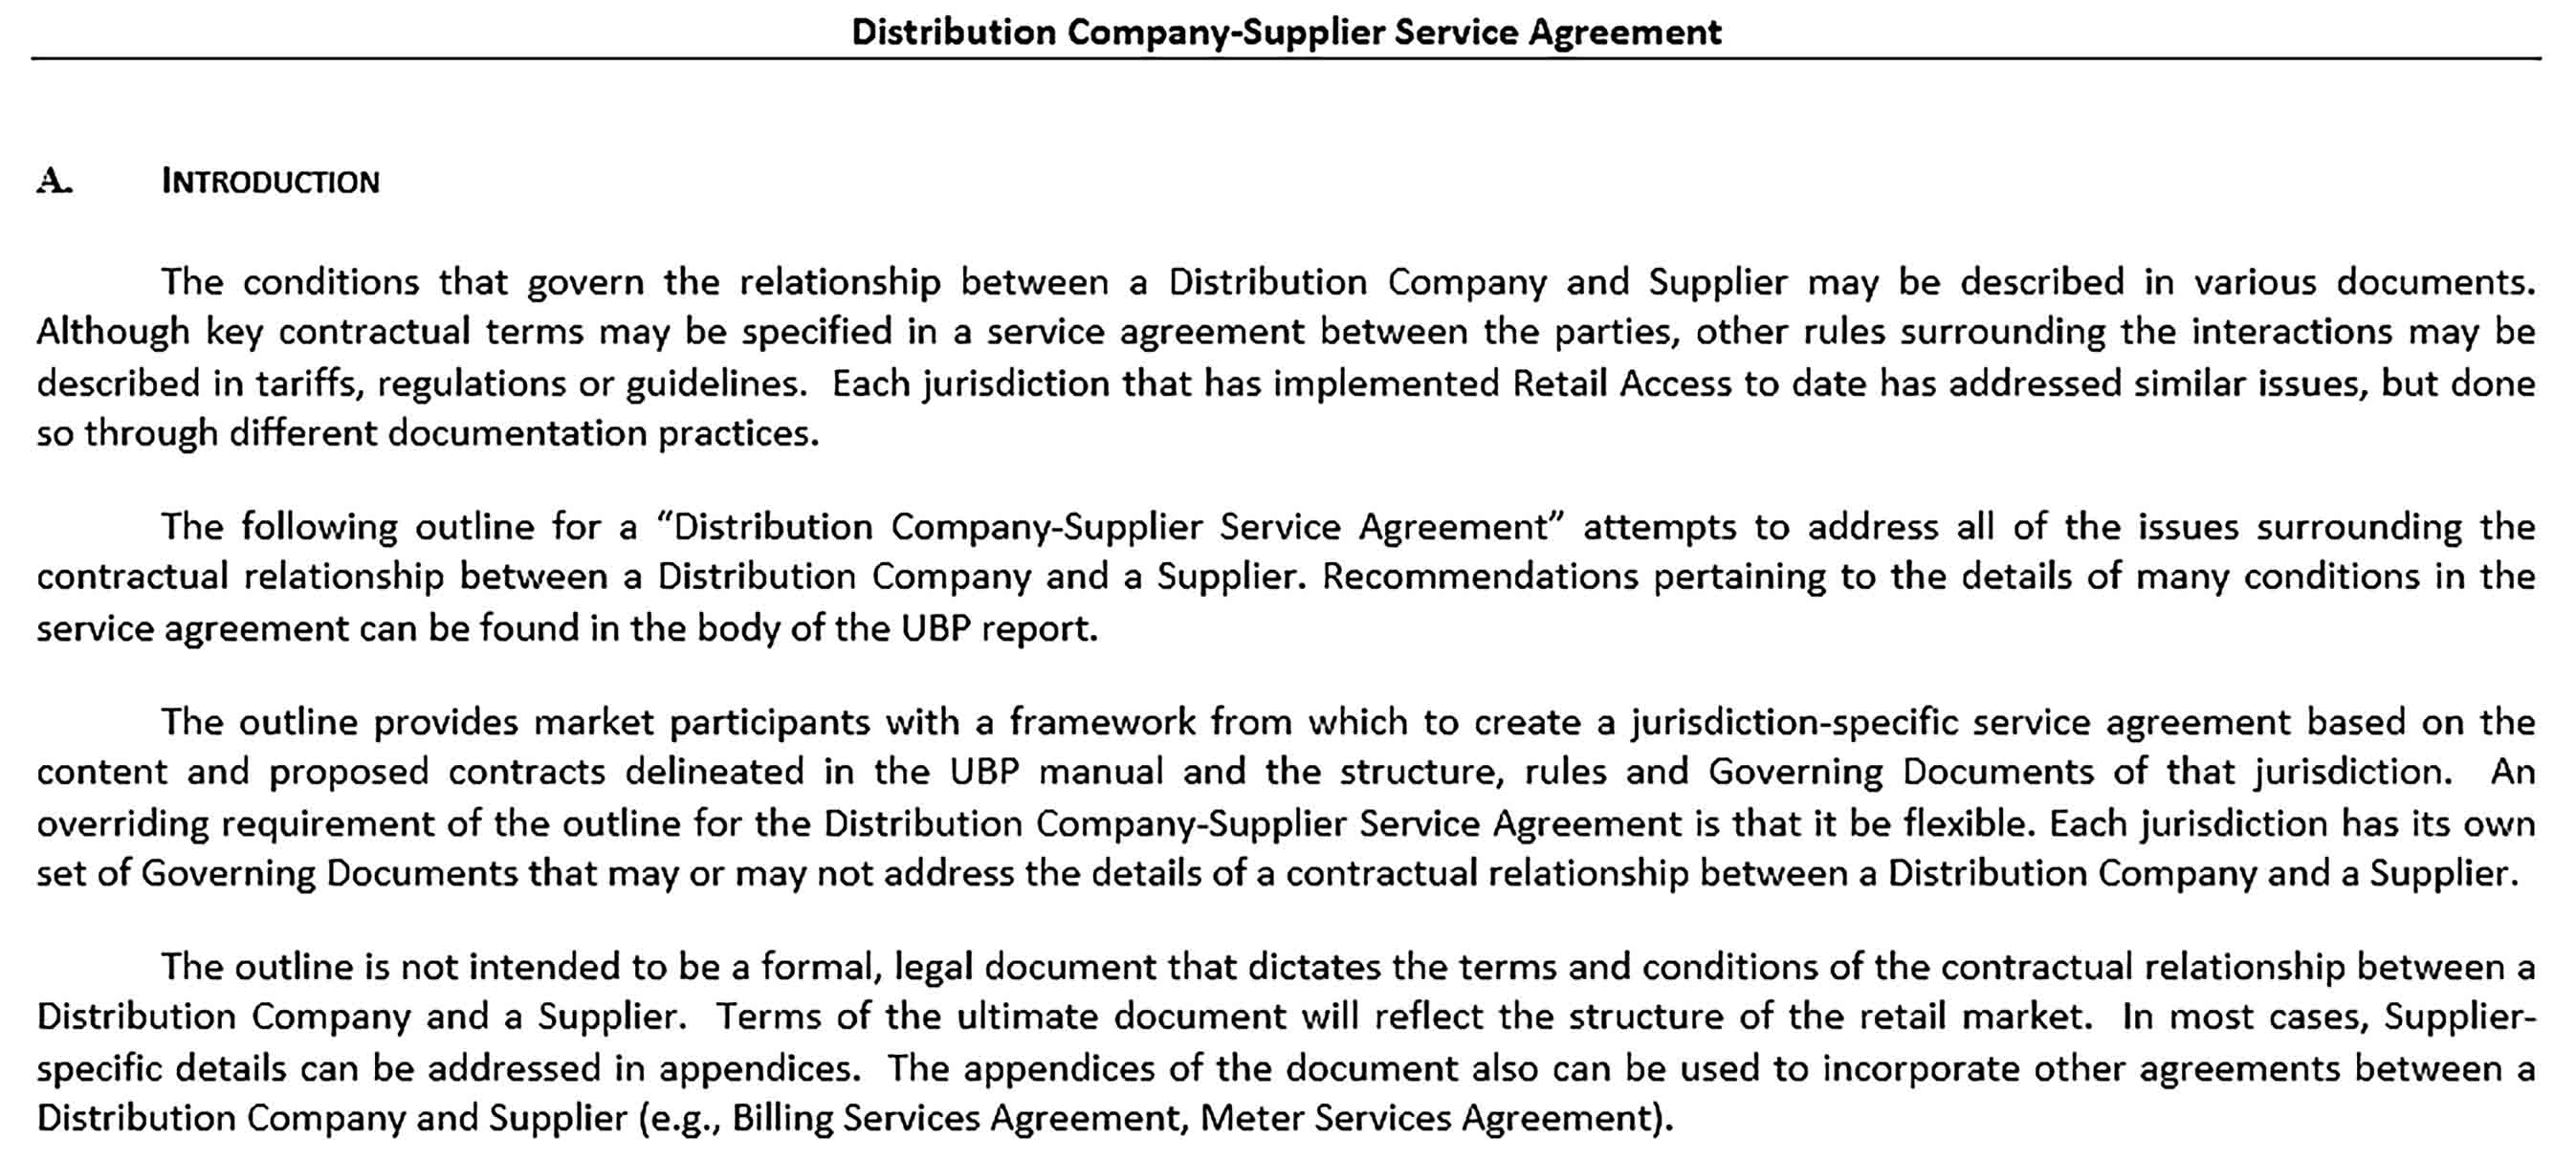 Sample Distribution Company Supplier Service Agreement